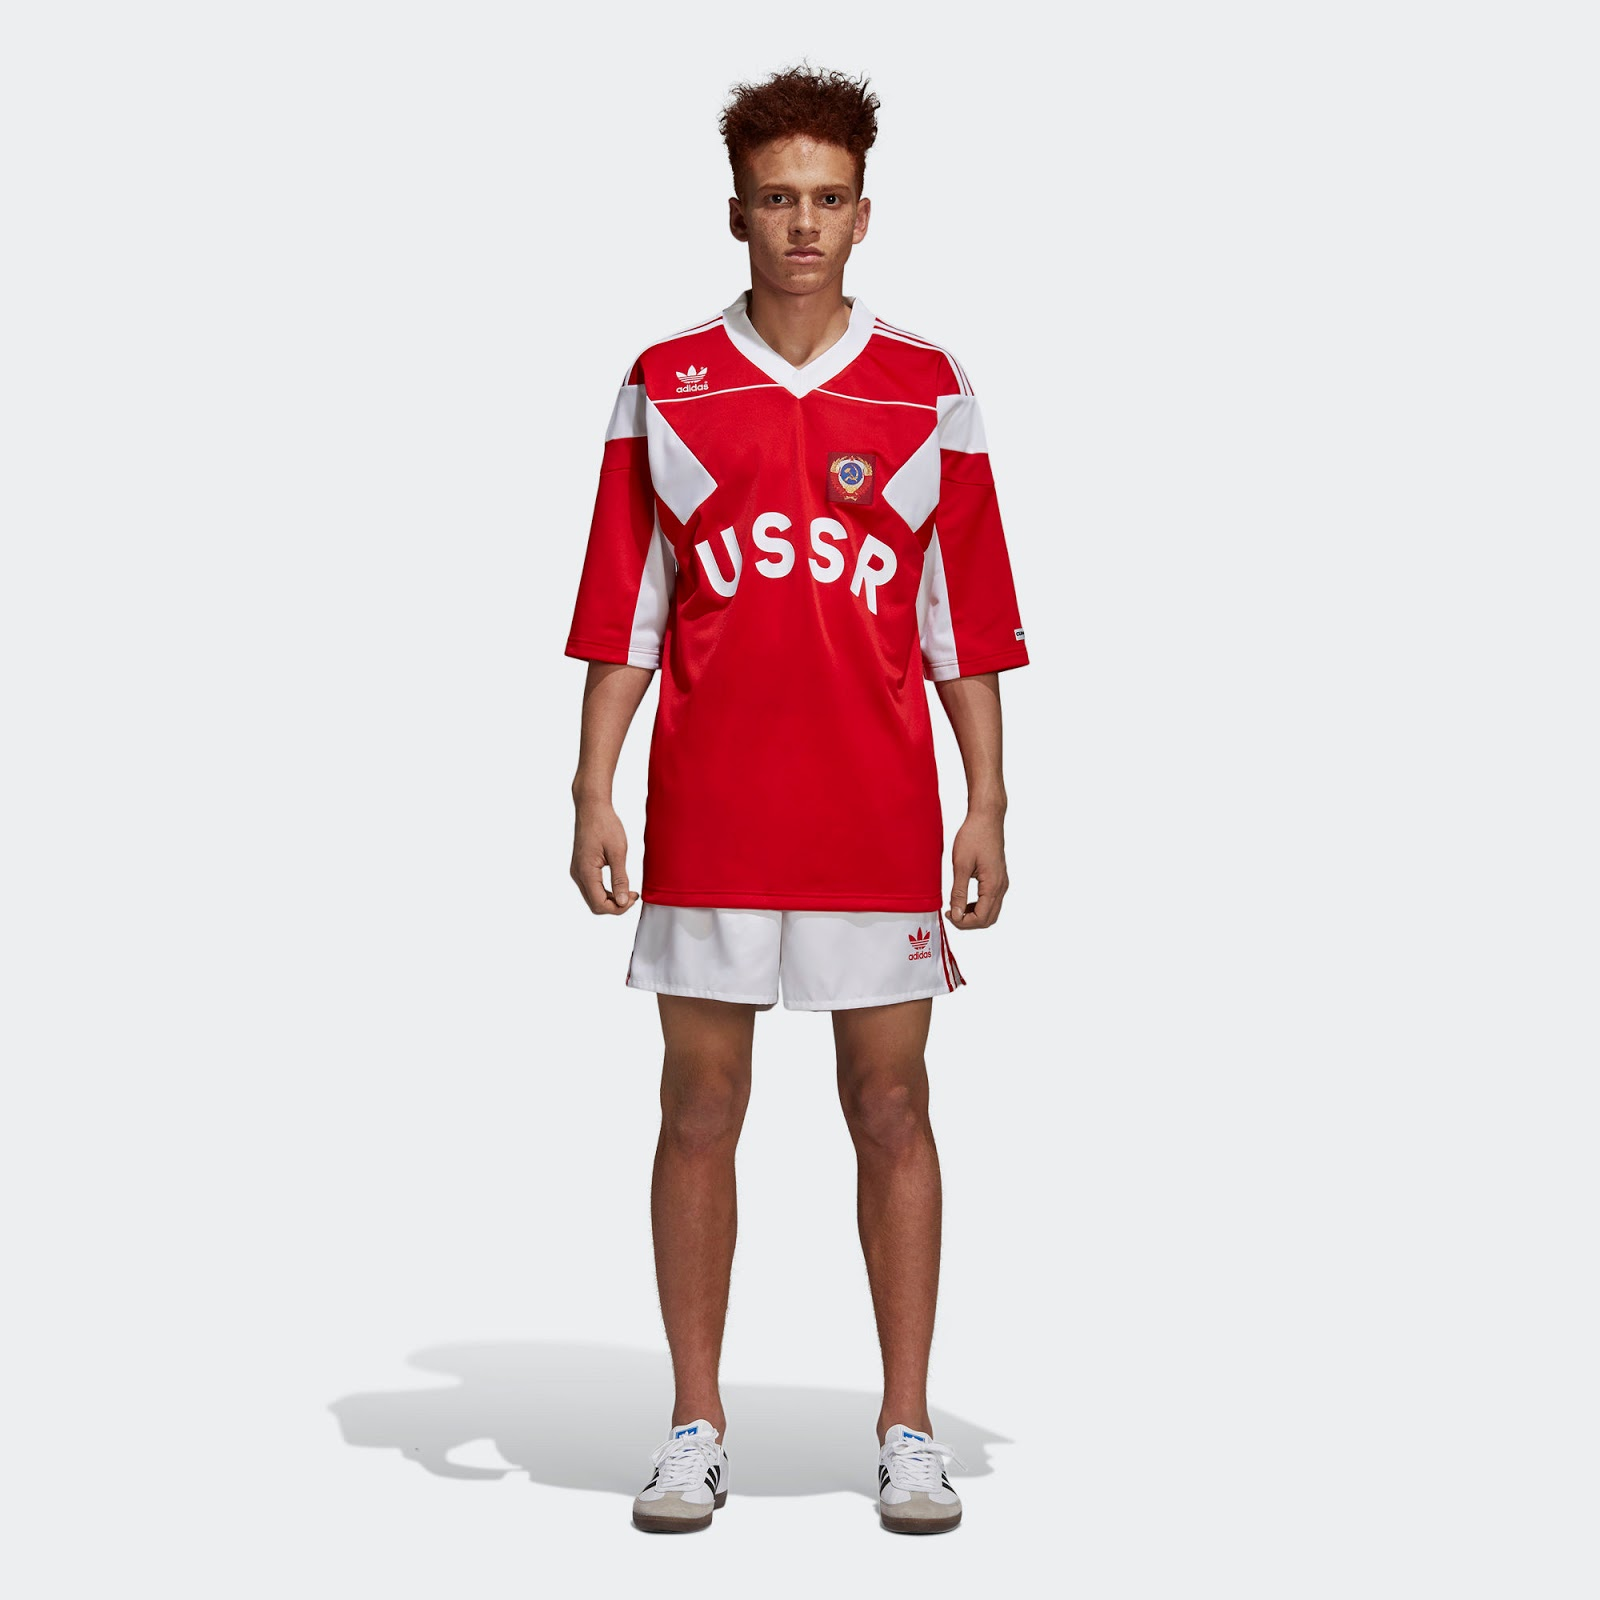 Adidas Originals Russia 2018 Retro Shirt Released | Futbolgrid